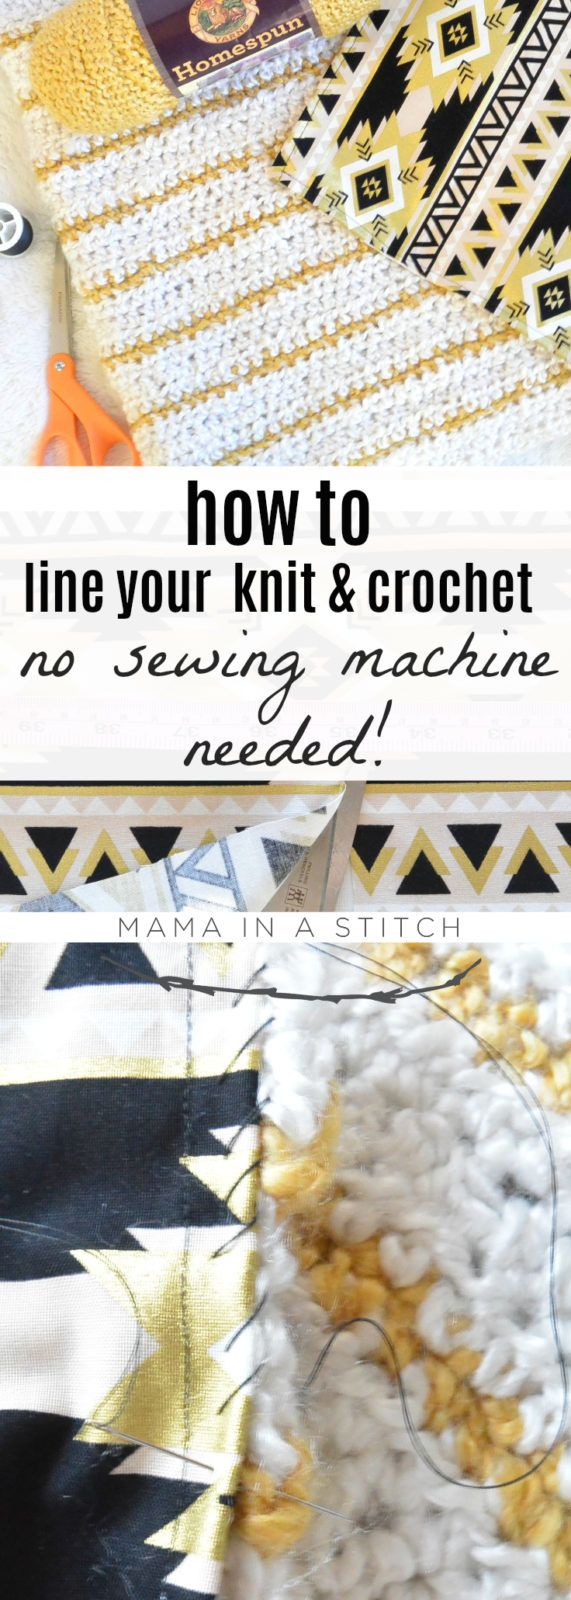 How To Line Knit Projects and Crochet via @MamaInAStitch  Super easy free tutorial on how to add a lining to your knit and crochet projects